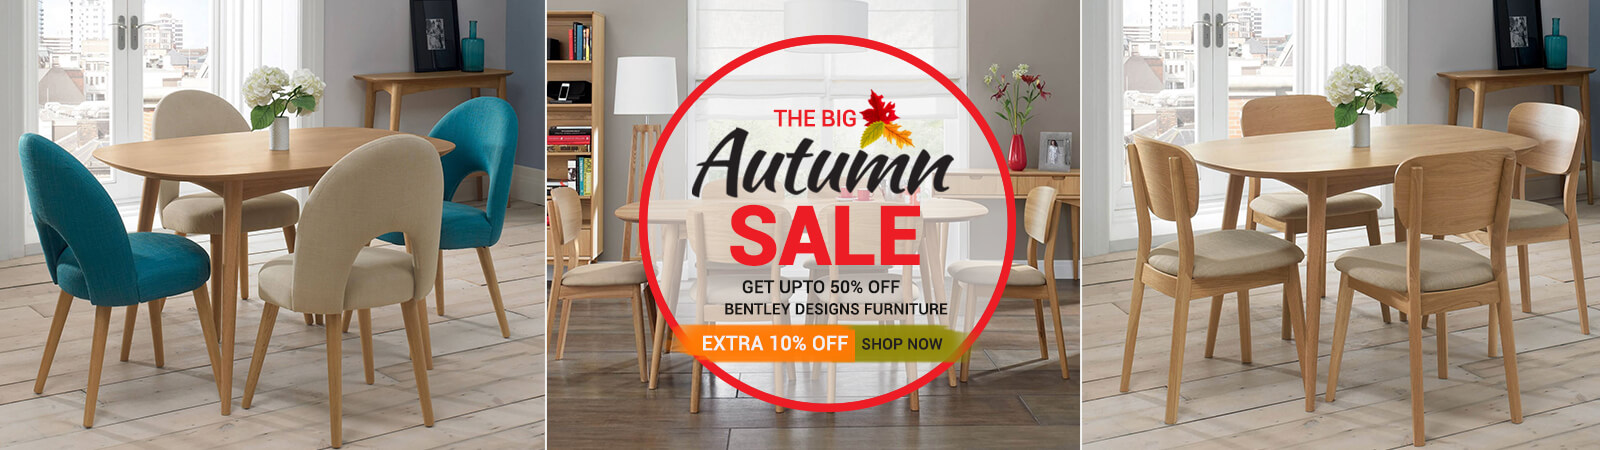 Furniture Sale Online Uk Osetacouleur